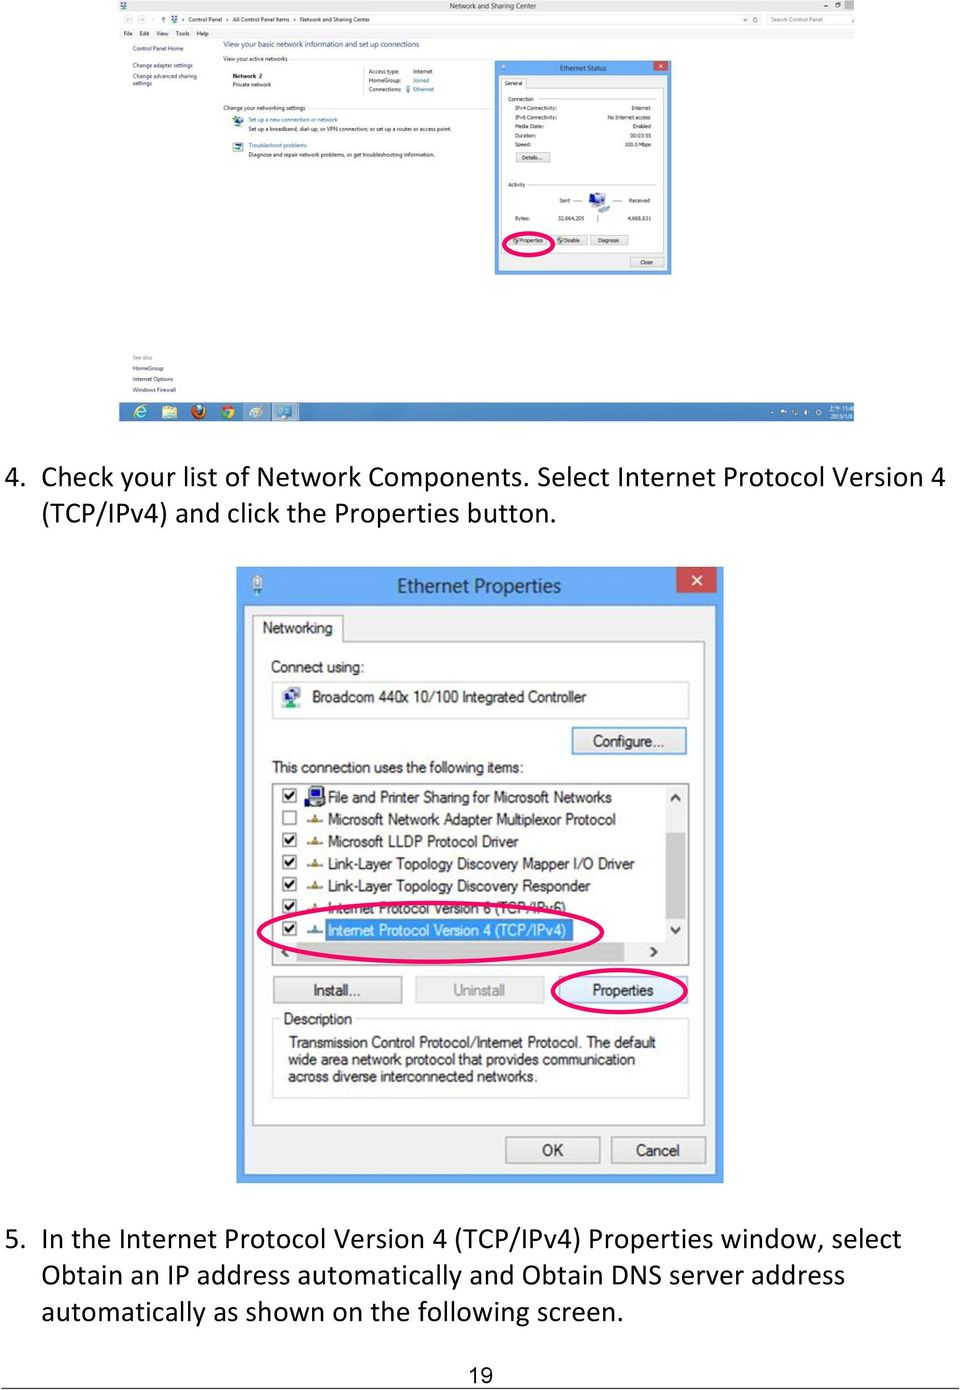 5. In the Internet Protocol Version 4 (TCP/IPv4) Properties window, select